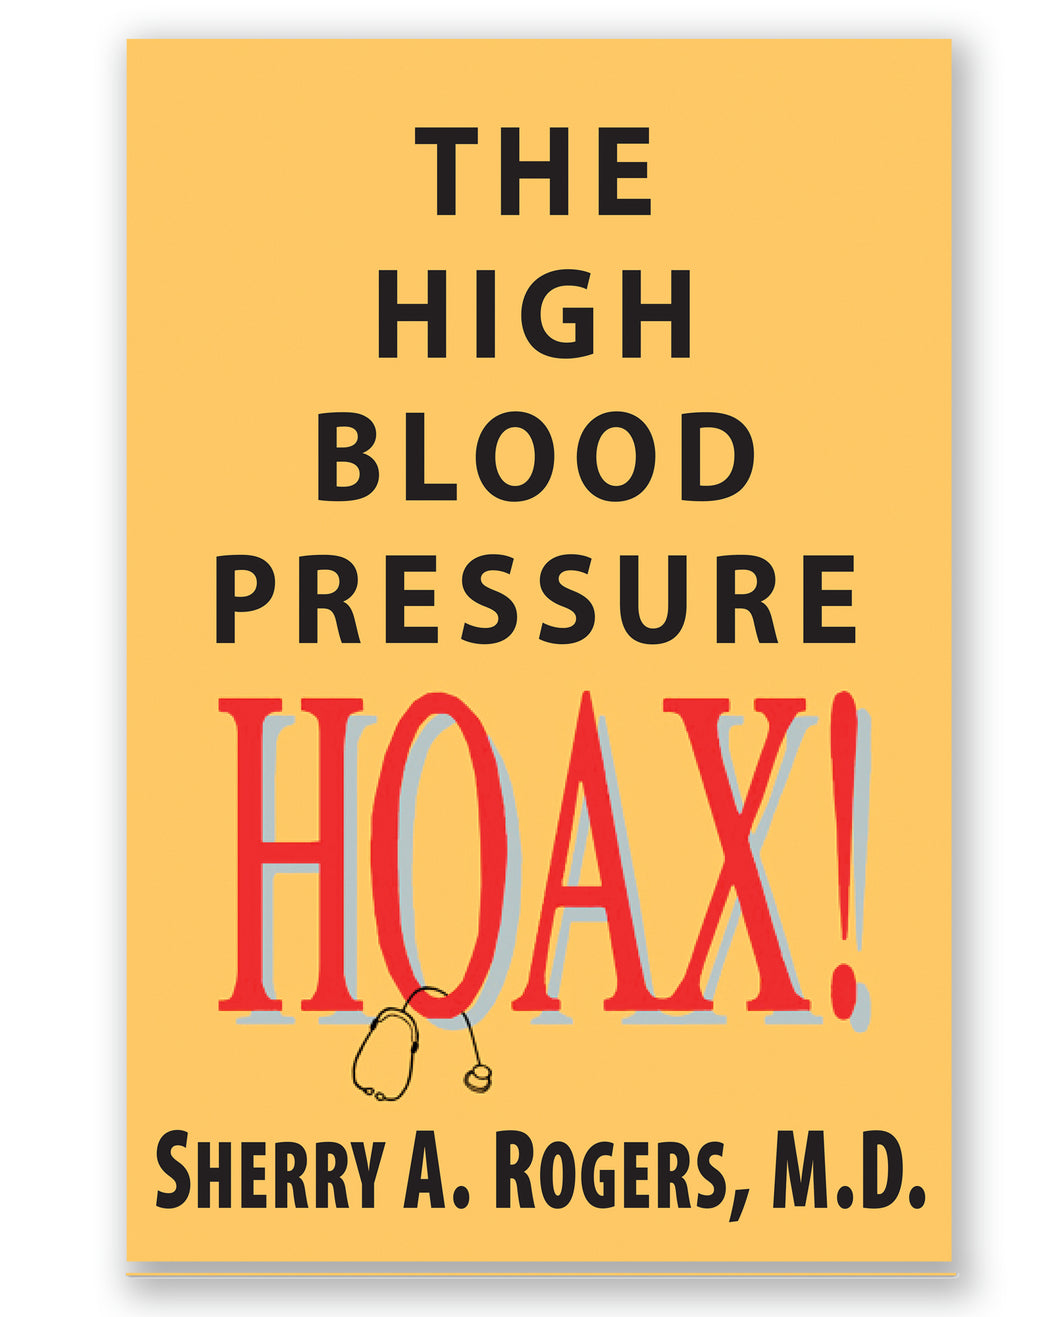 The High Blood Pressure Hoax! by Sherry A. Rogers, M.D.